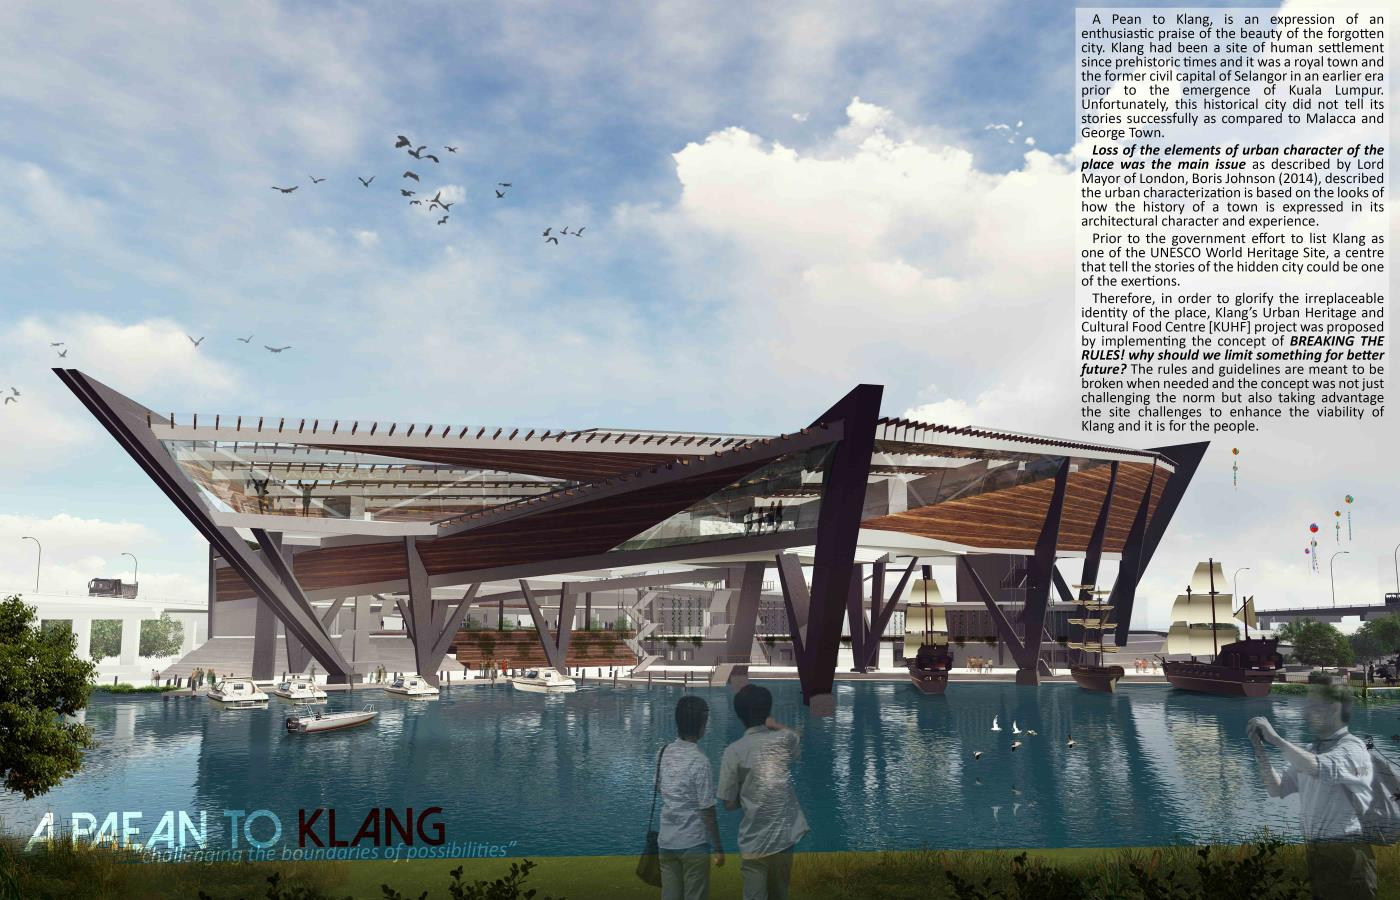 A Paean to Klang: An Urban Heritage and Cultural Food Centre [KUHF]